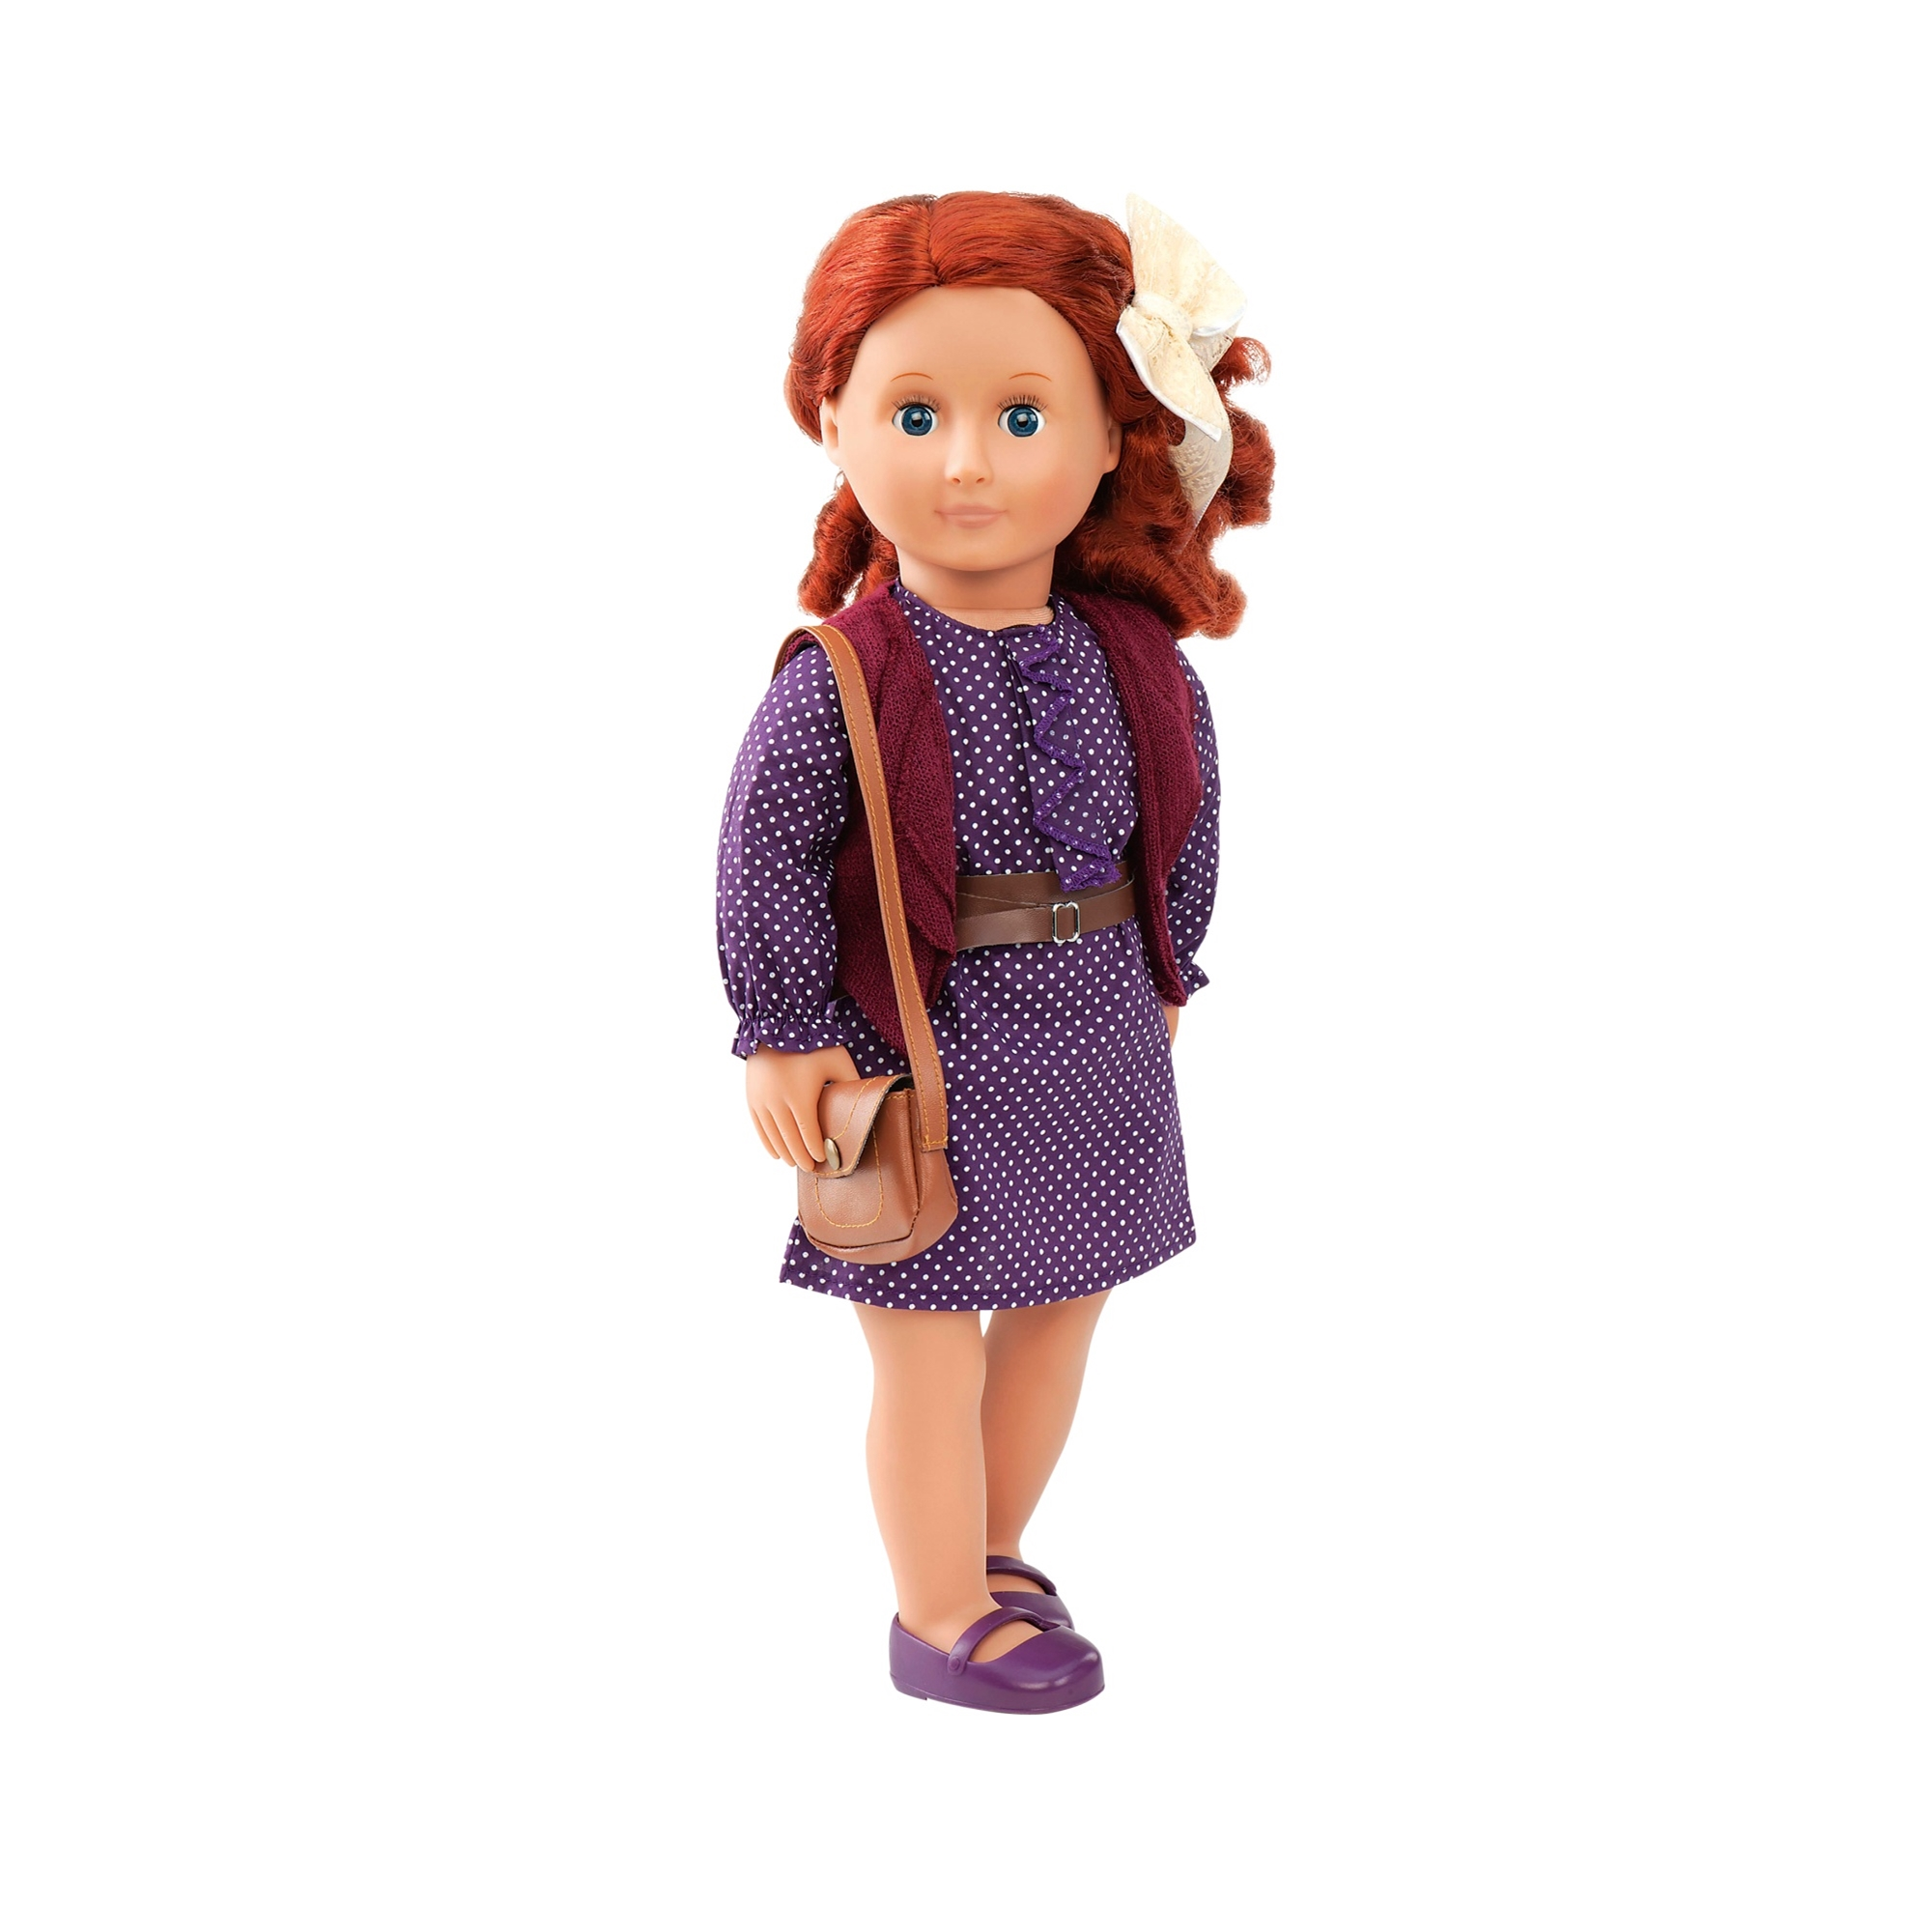 Our GenerationOutfit Purple Dress and Handbag